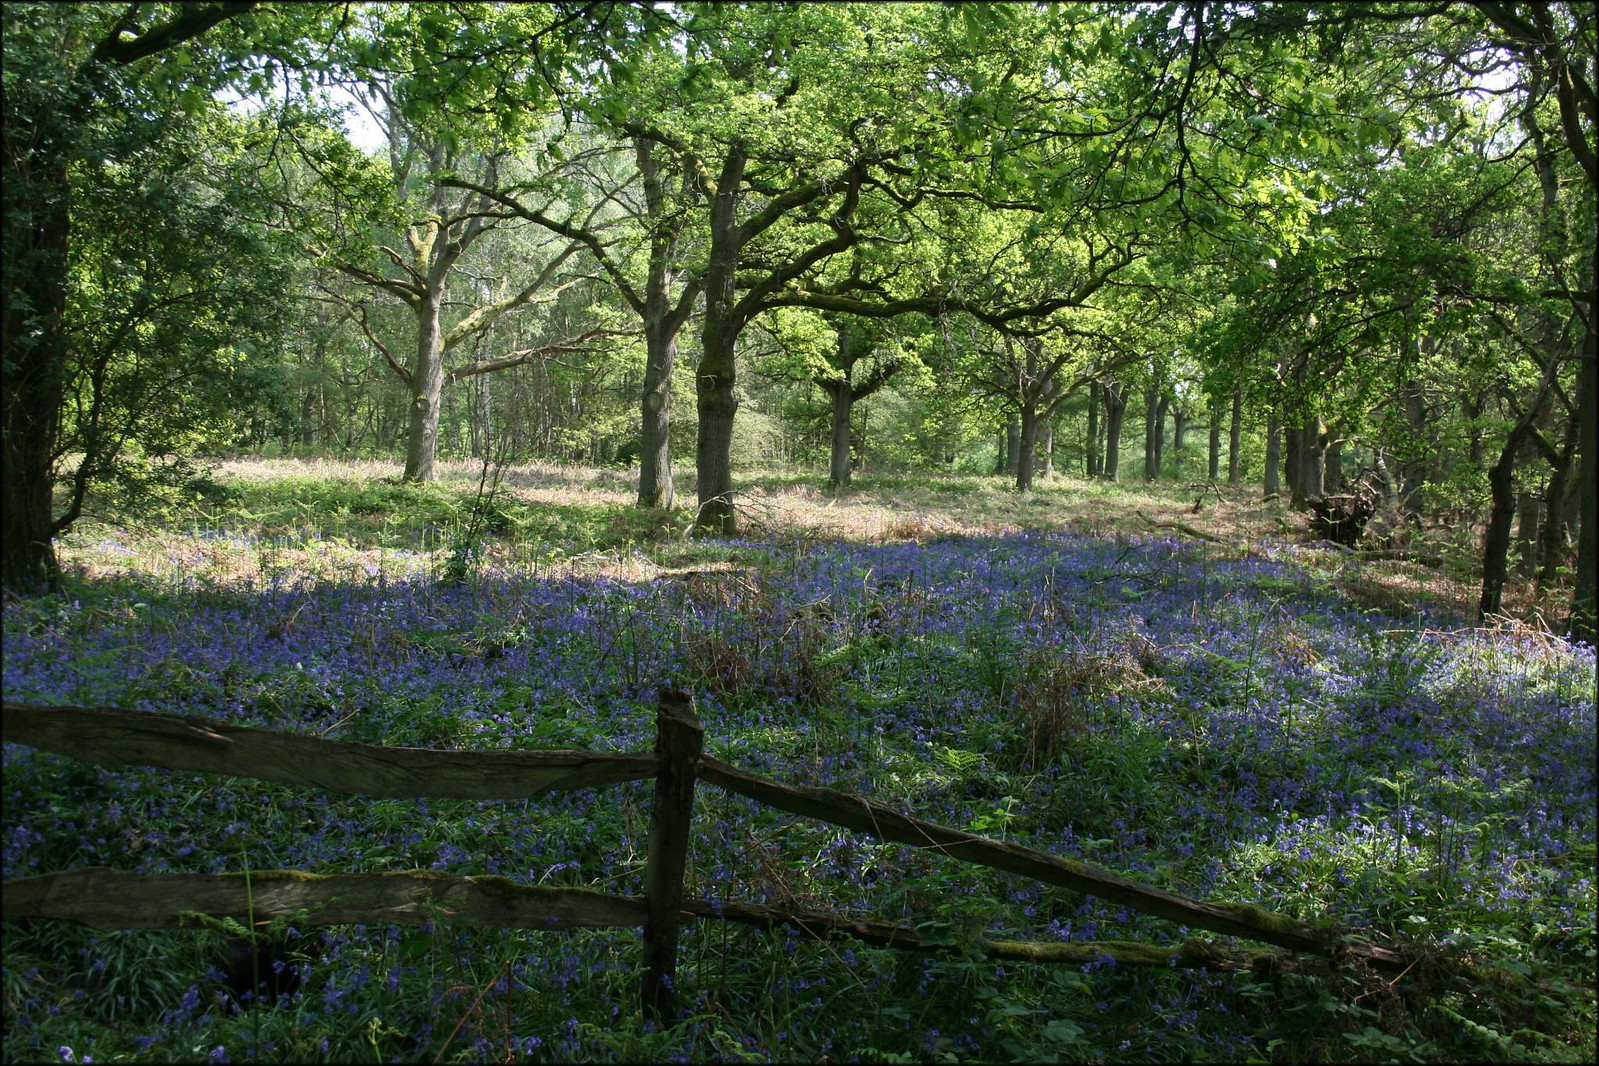 Bluebells on Hambledon Common